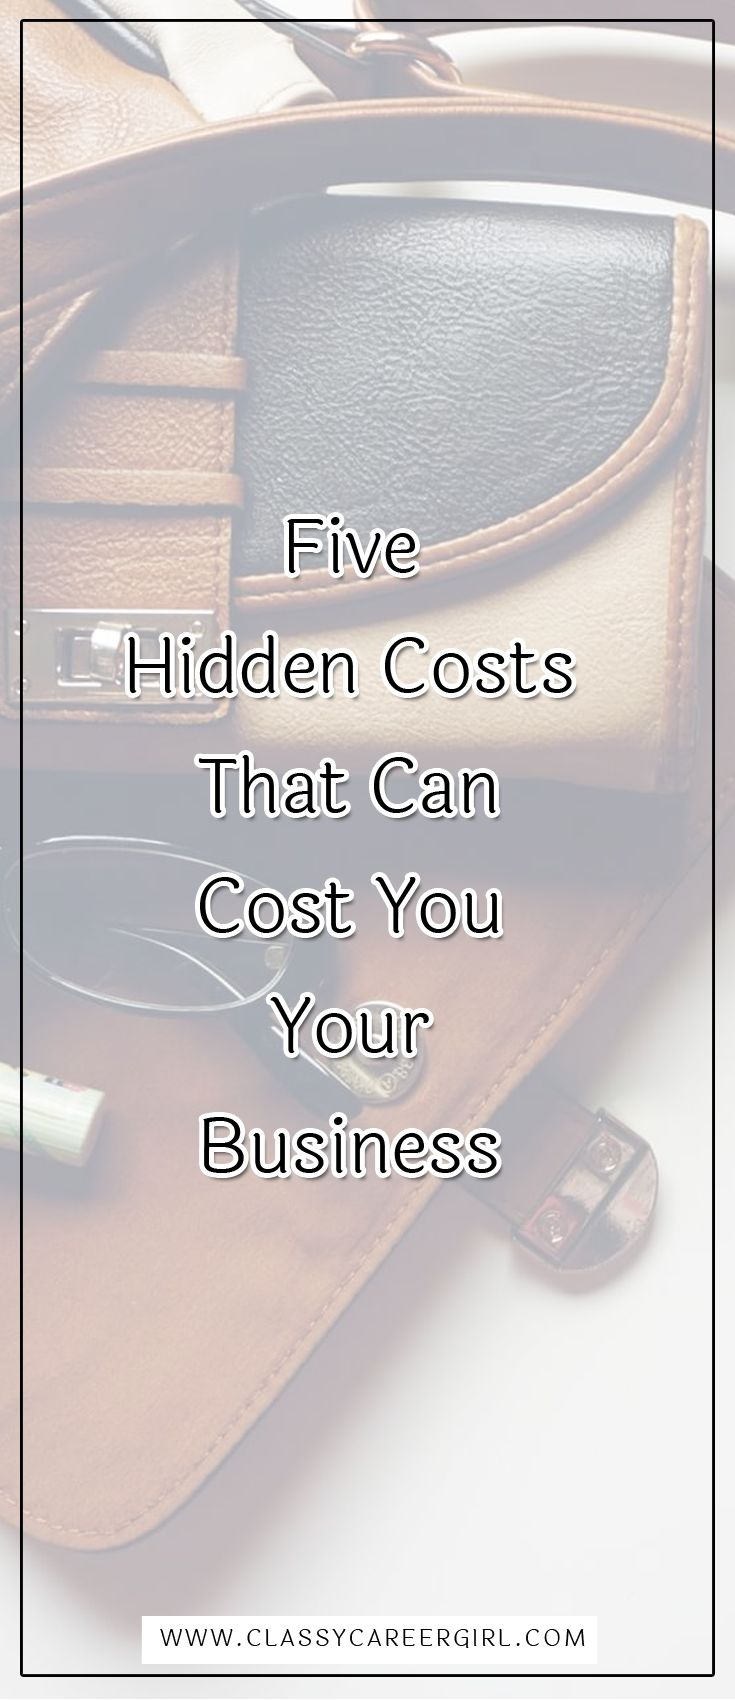 best images about books reading learning jason five hidden costs that can cost you your business